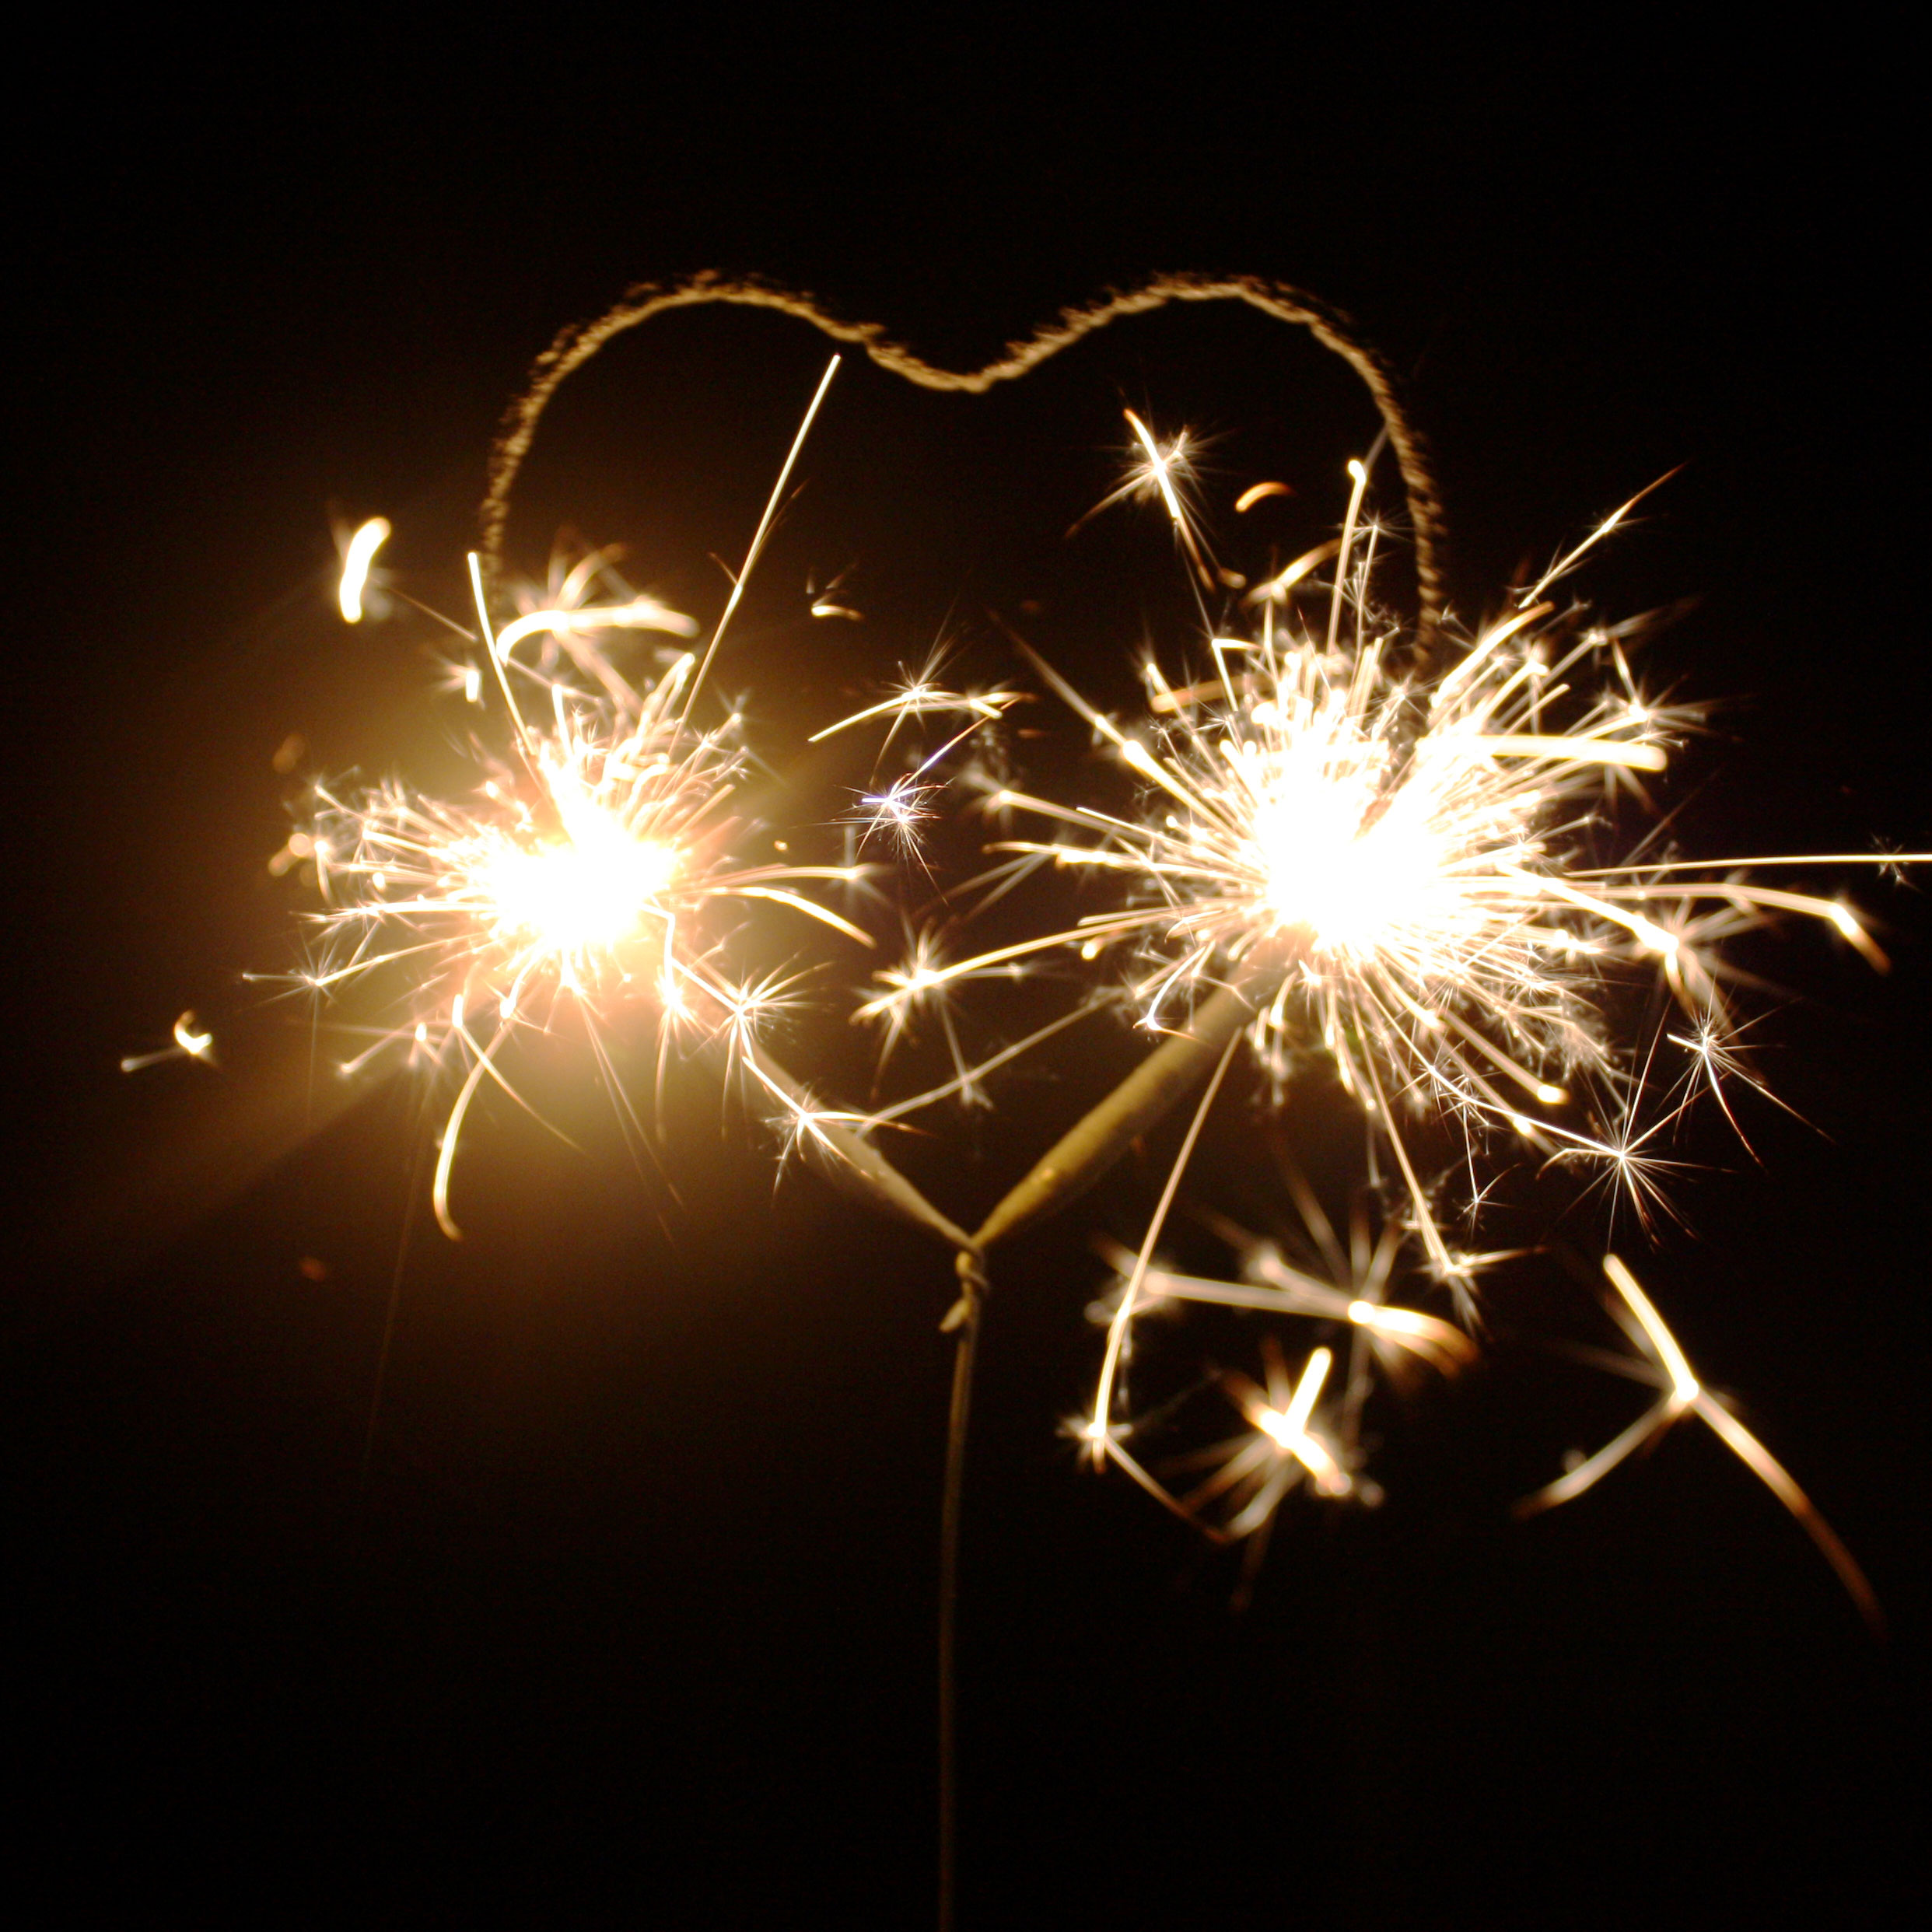 New Product - Heart Sparklers! - Superior Fireworks